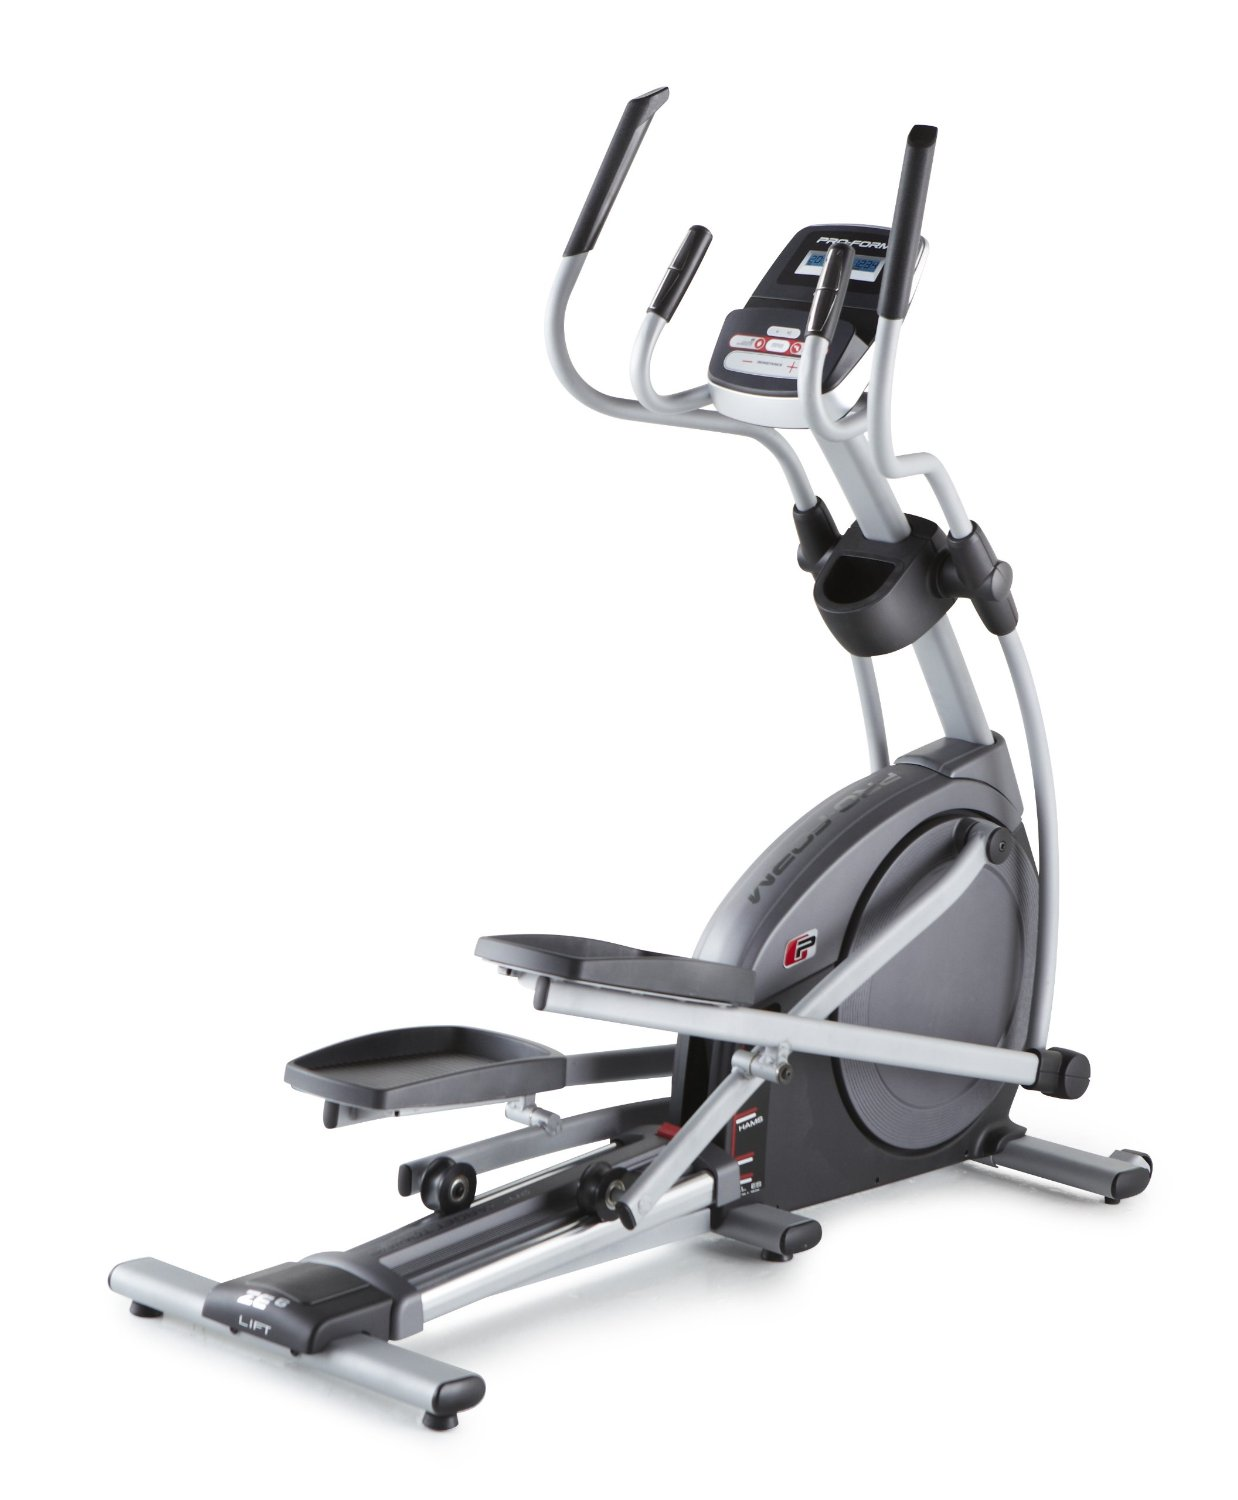 ProForm ZE 6 2014 Elliptical Trainer Review